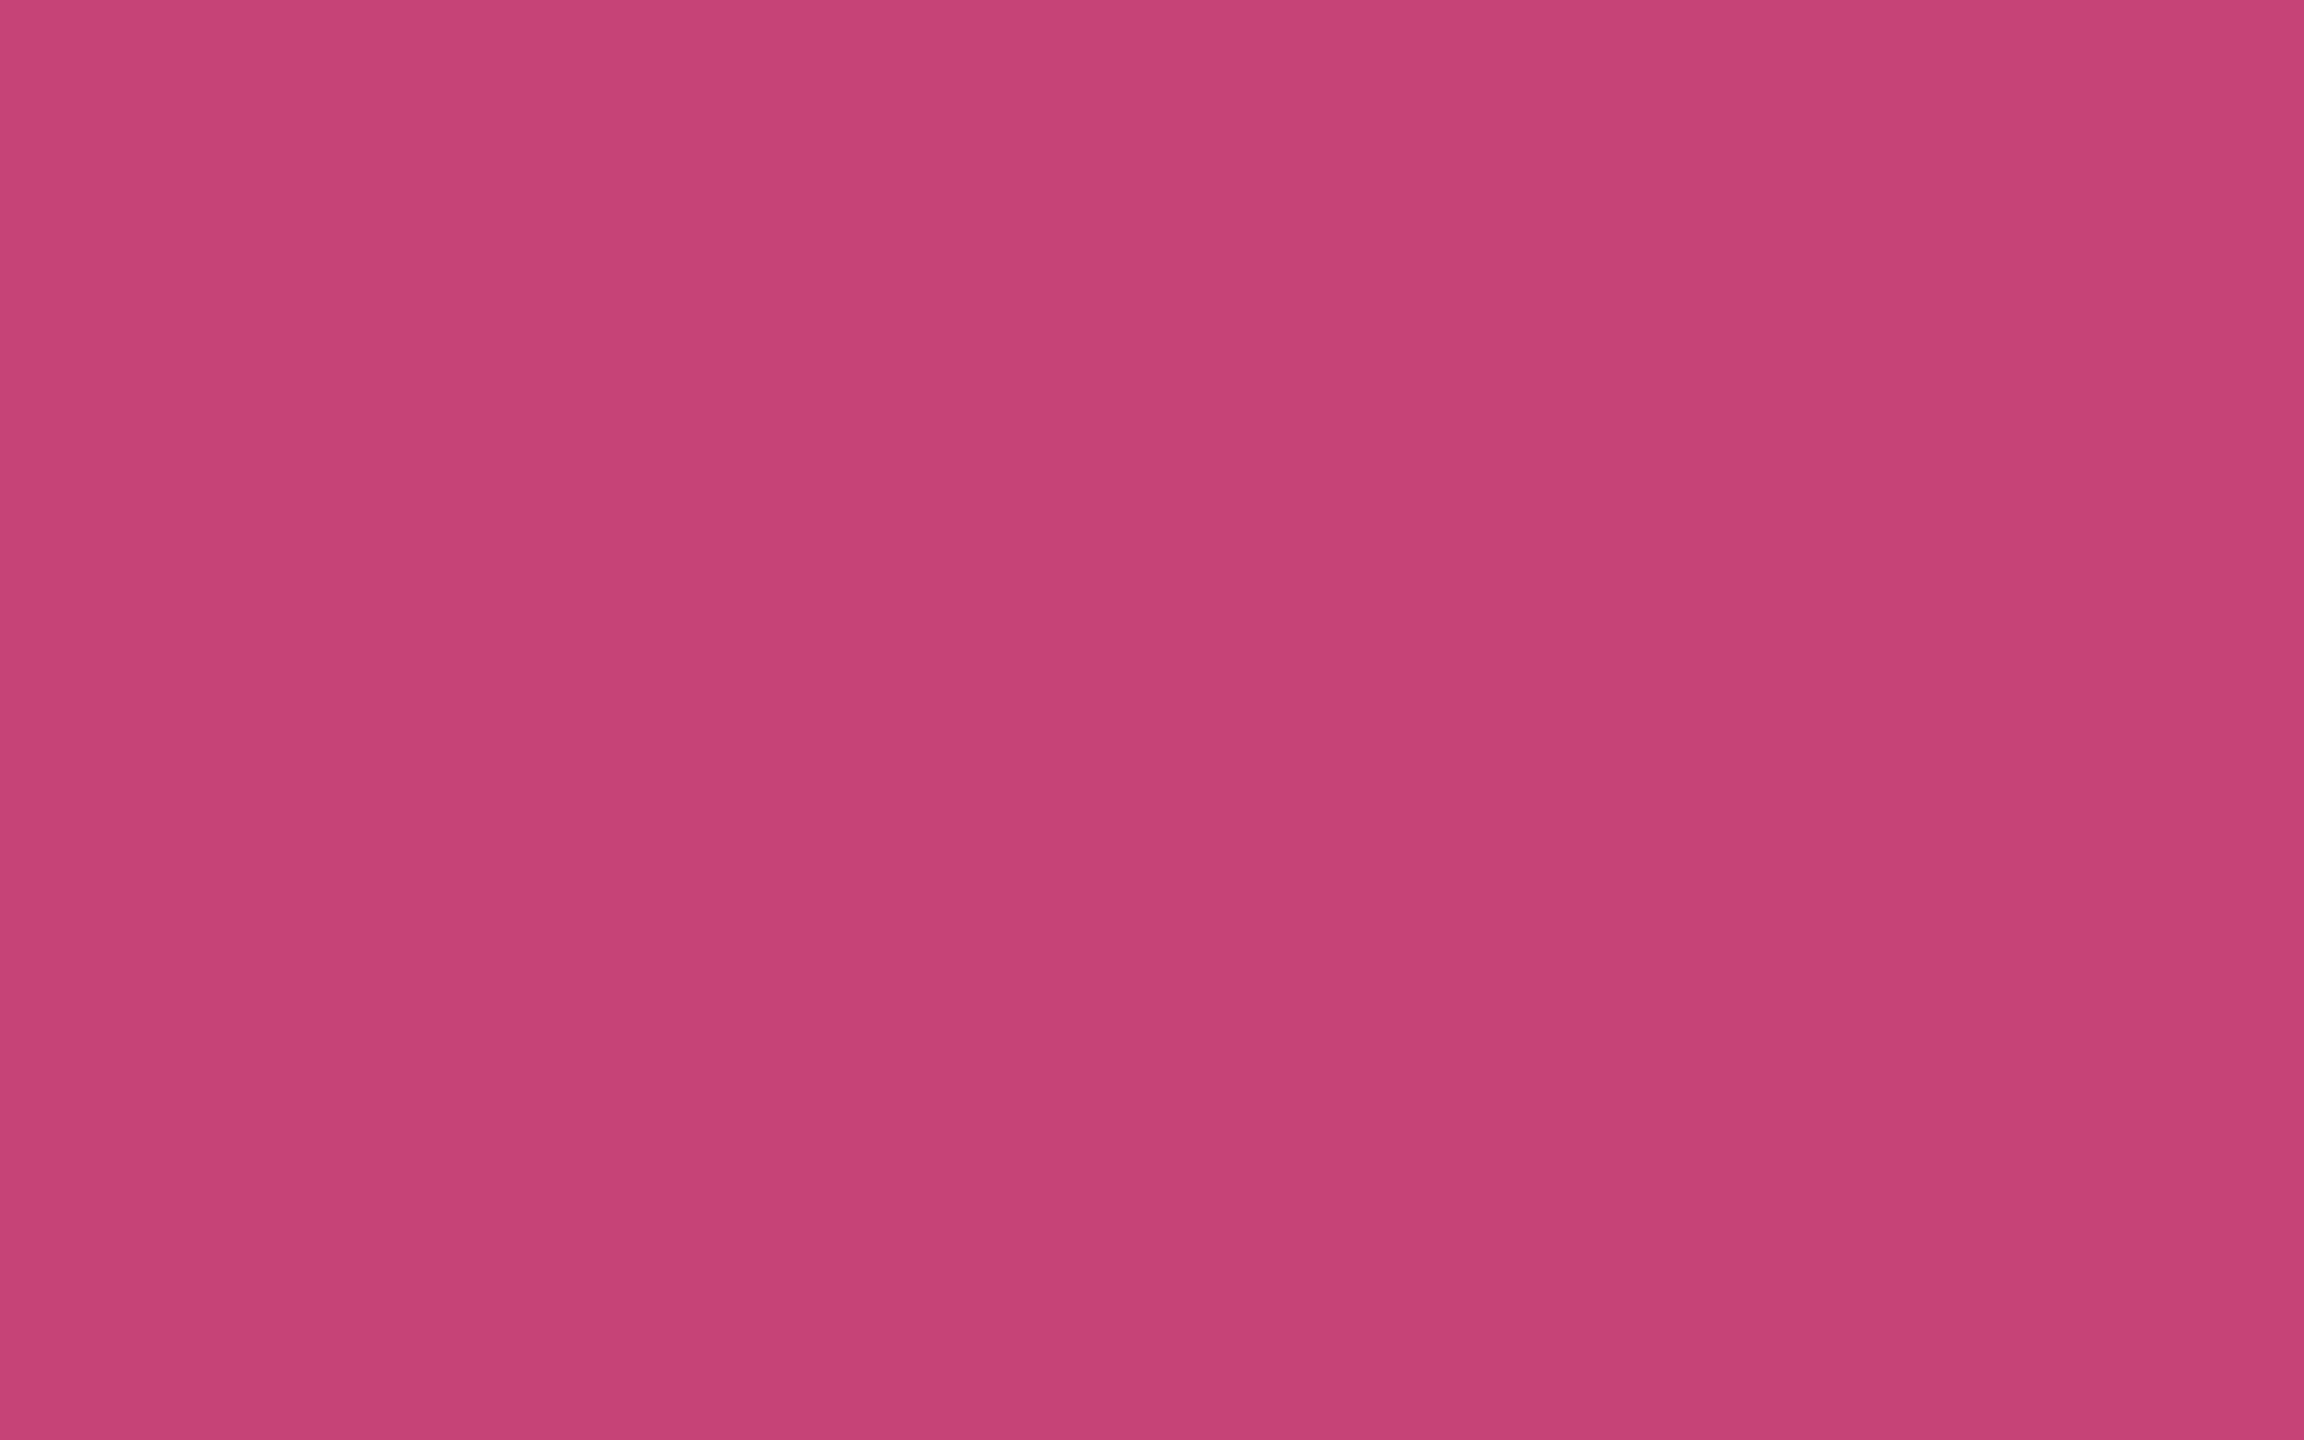 2304x1440 Fuchsia Rose Solid Color Background